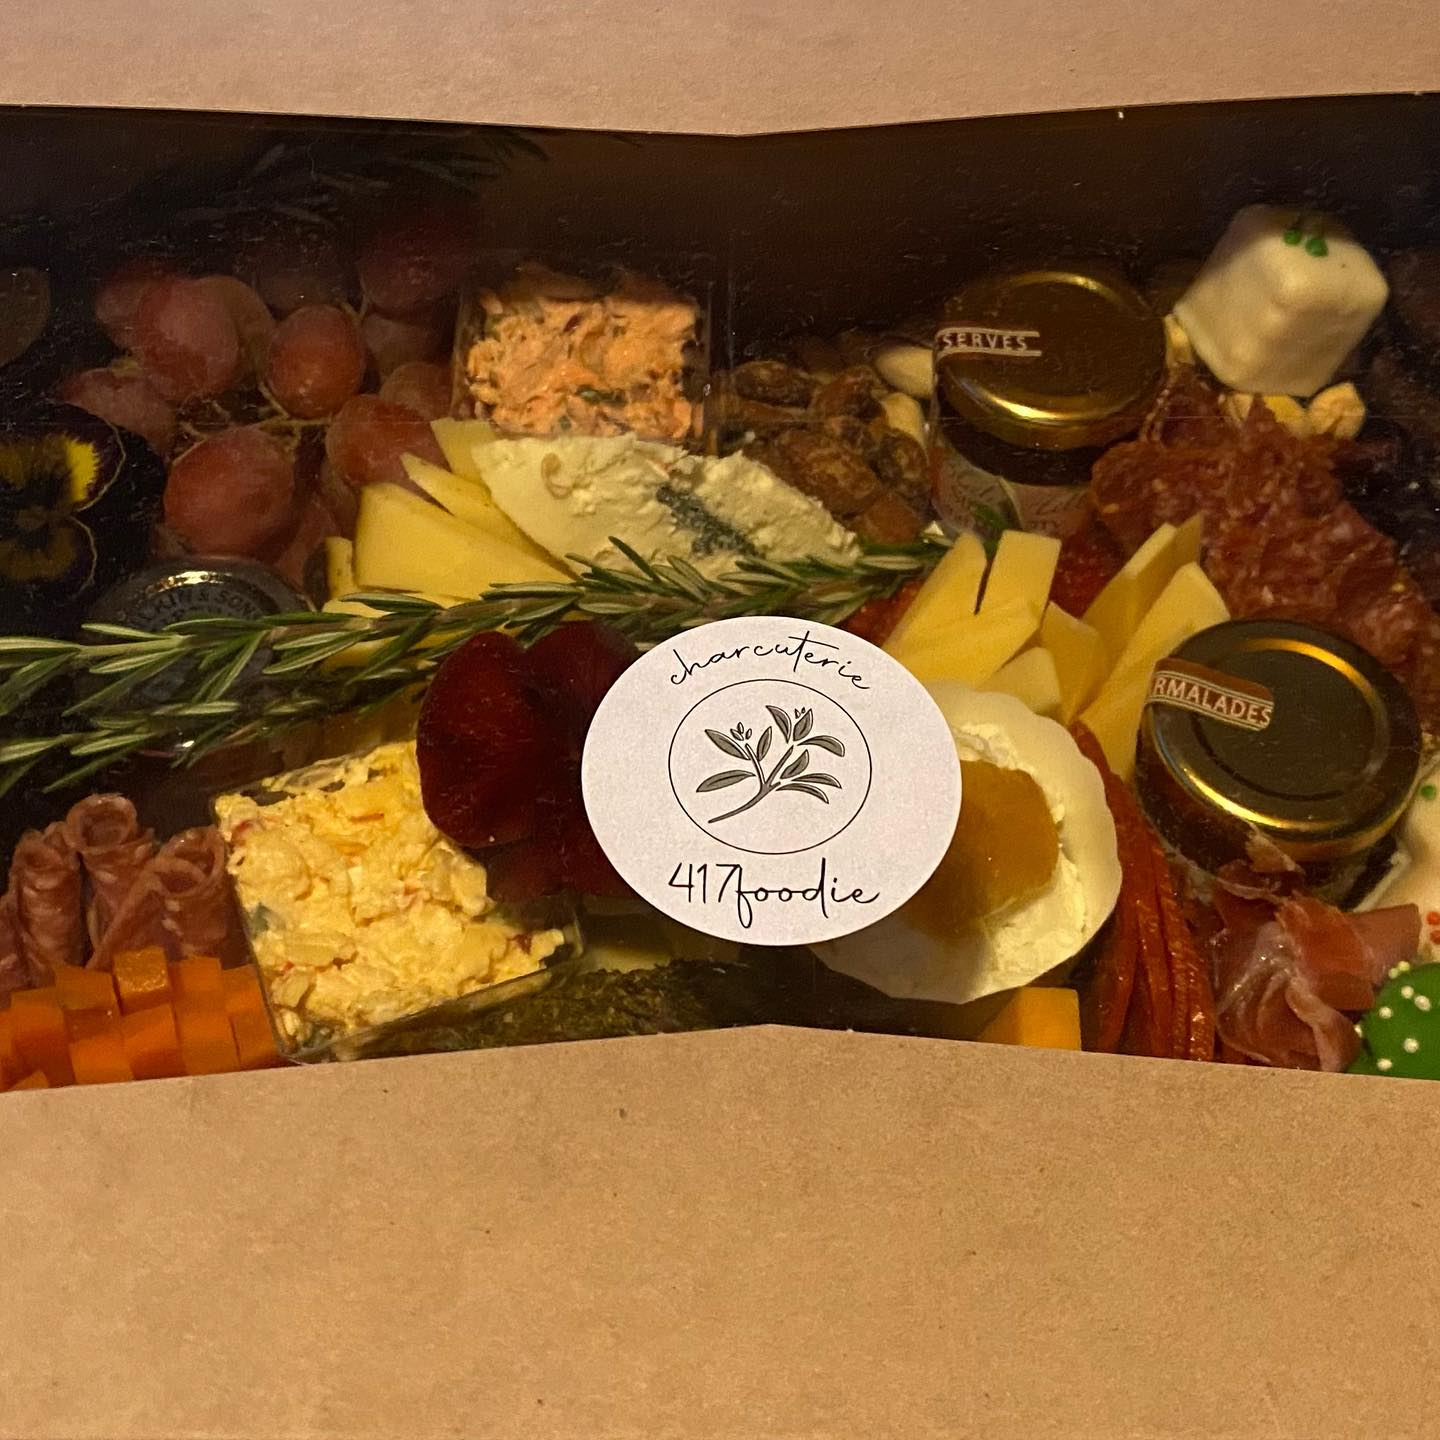 charcuterie board with assorted meats, cheeses, fruits, vegetables and nuts in a box